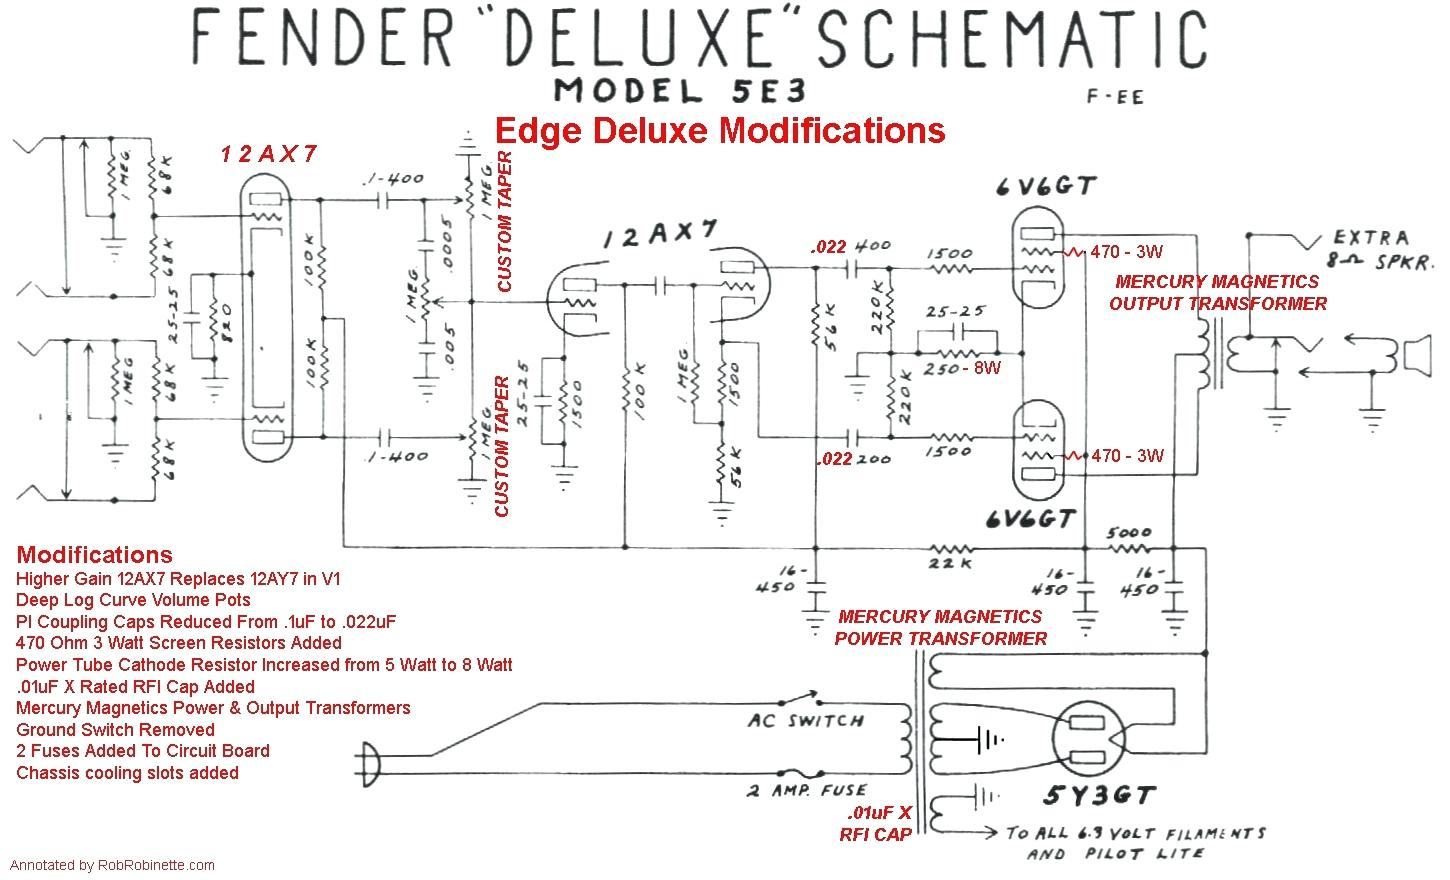 Acme Buck Boost Transformer Wiring Diagram | Wiring Diagram - Acme Transformer Wiring Diagram